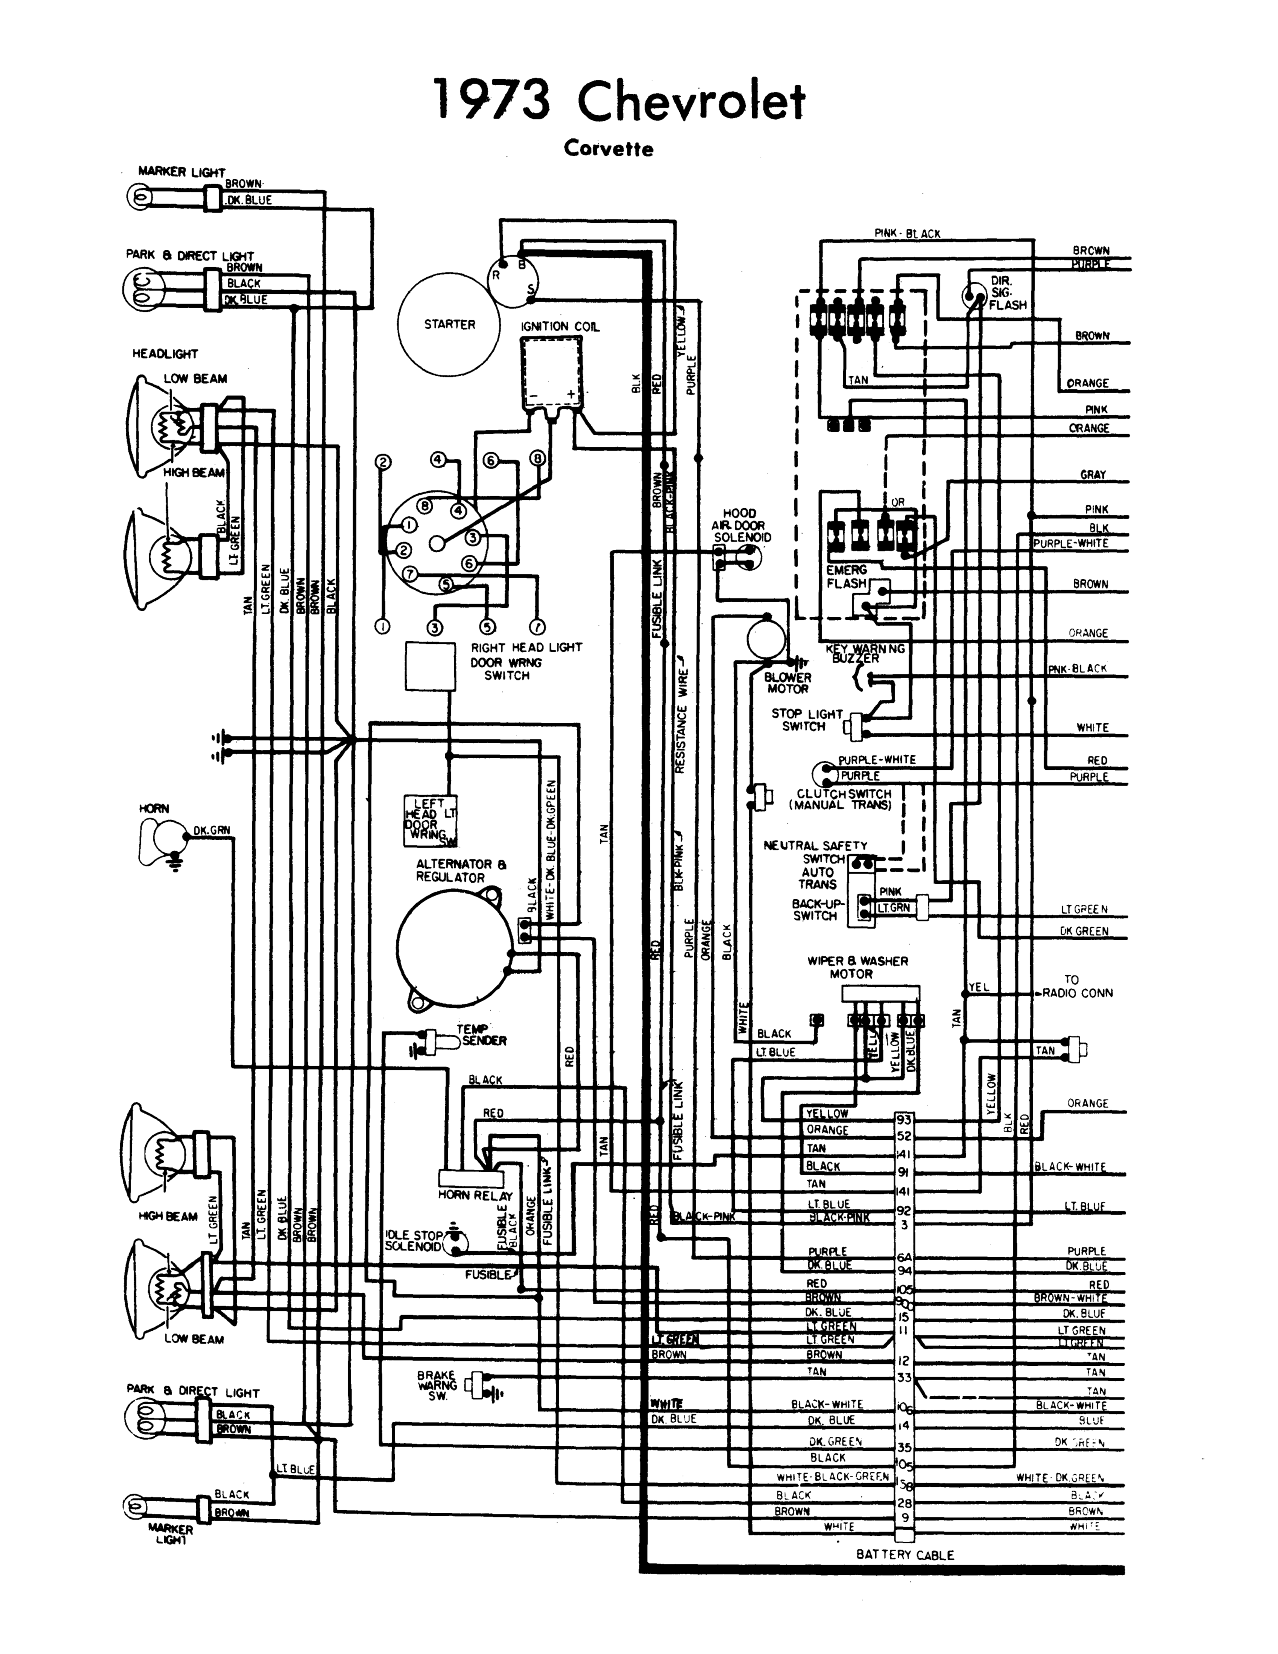 medium resolution of wiring diagram 1973 corvette chevy corvette 1973 wiring diagrams 1974 corvette engine wiring diagram corvette engine wiring diagram